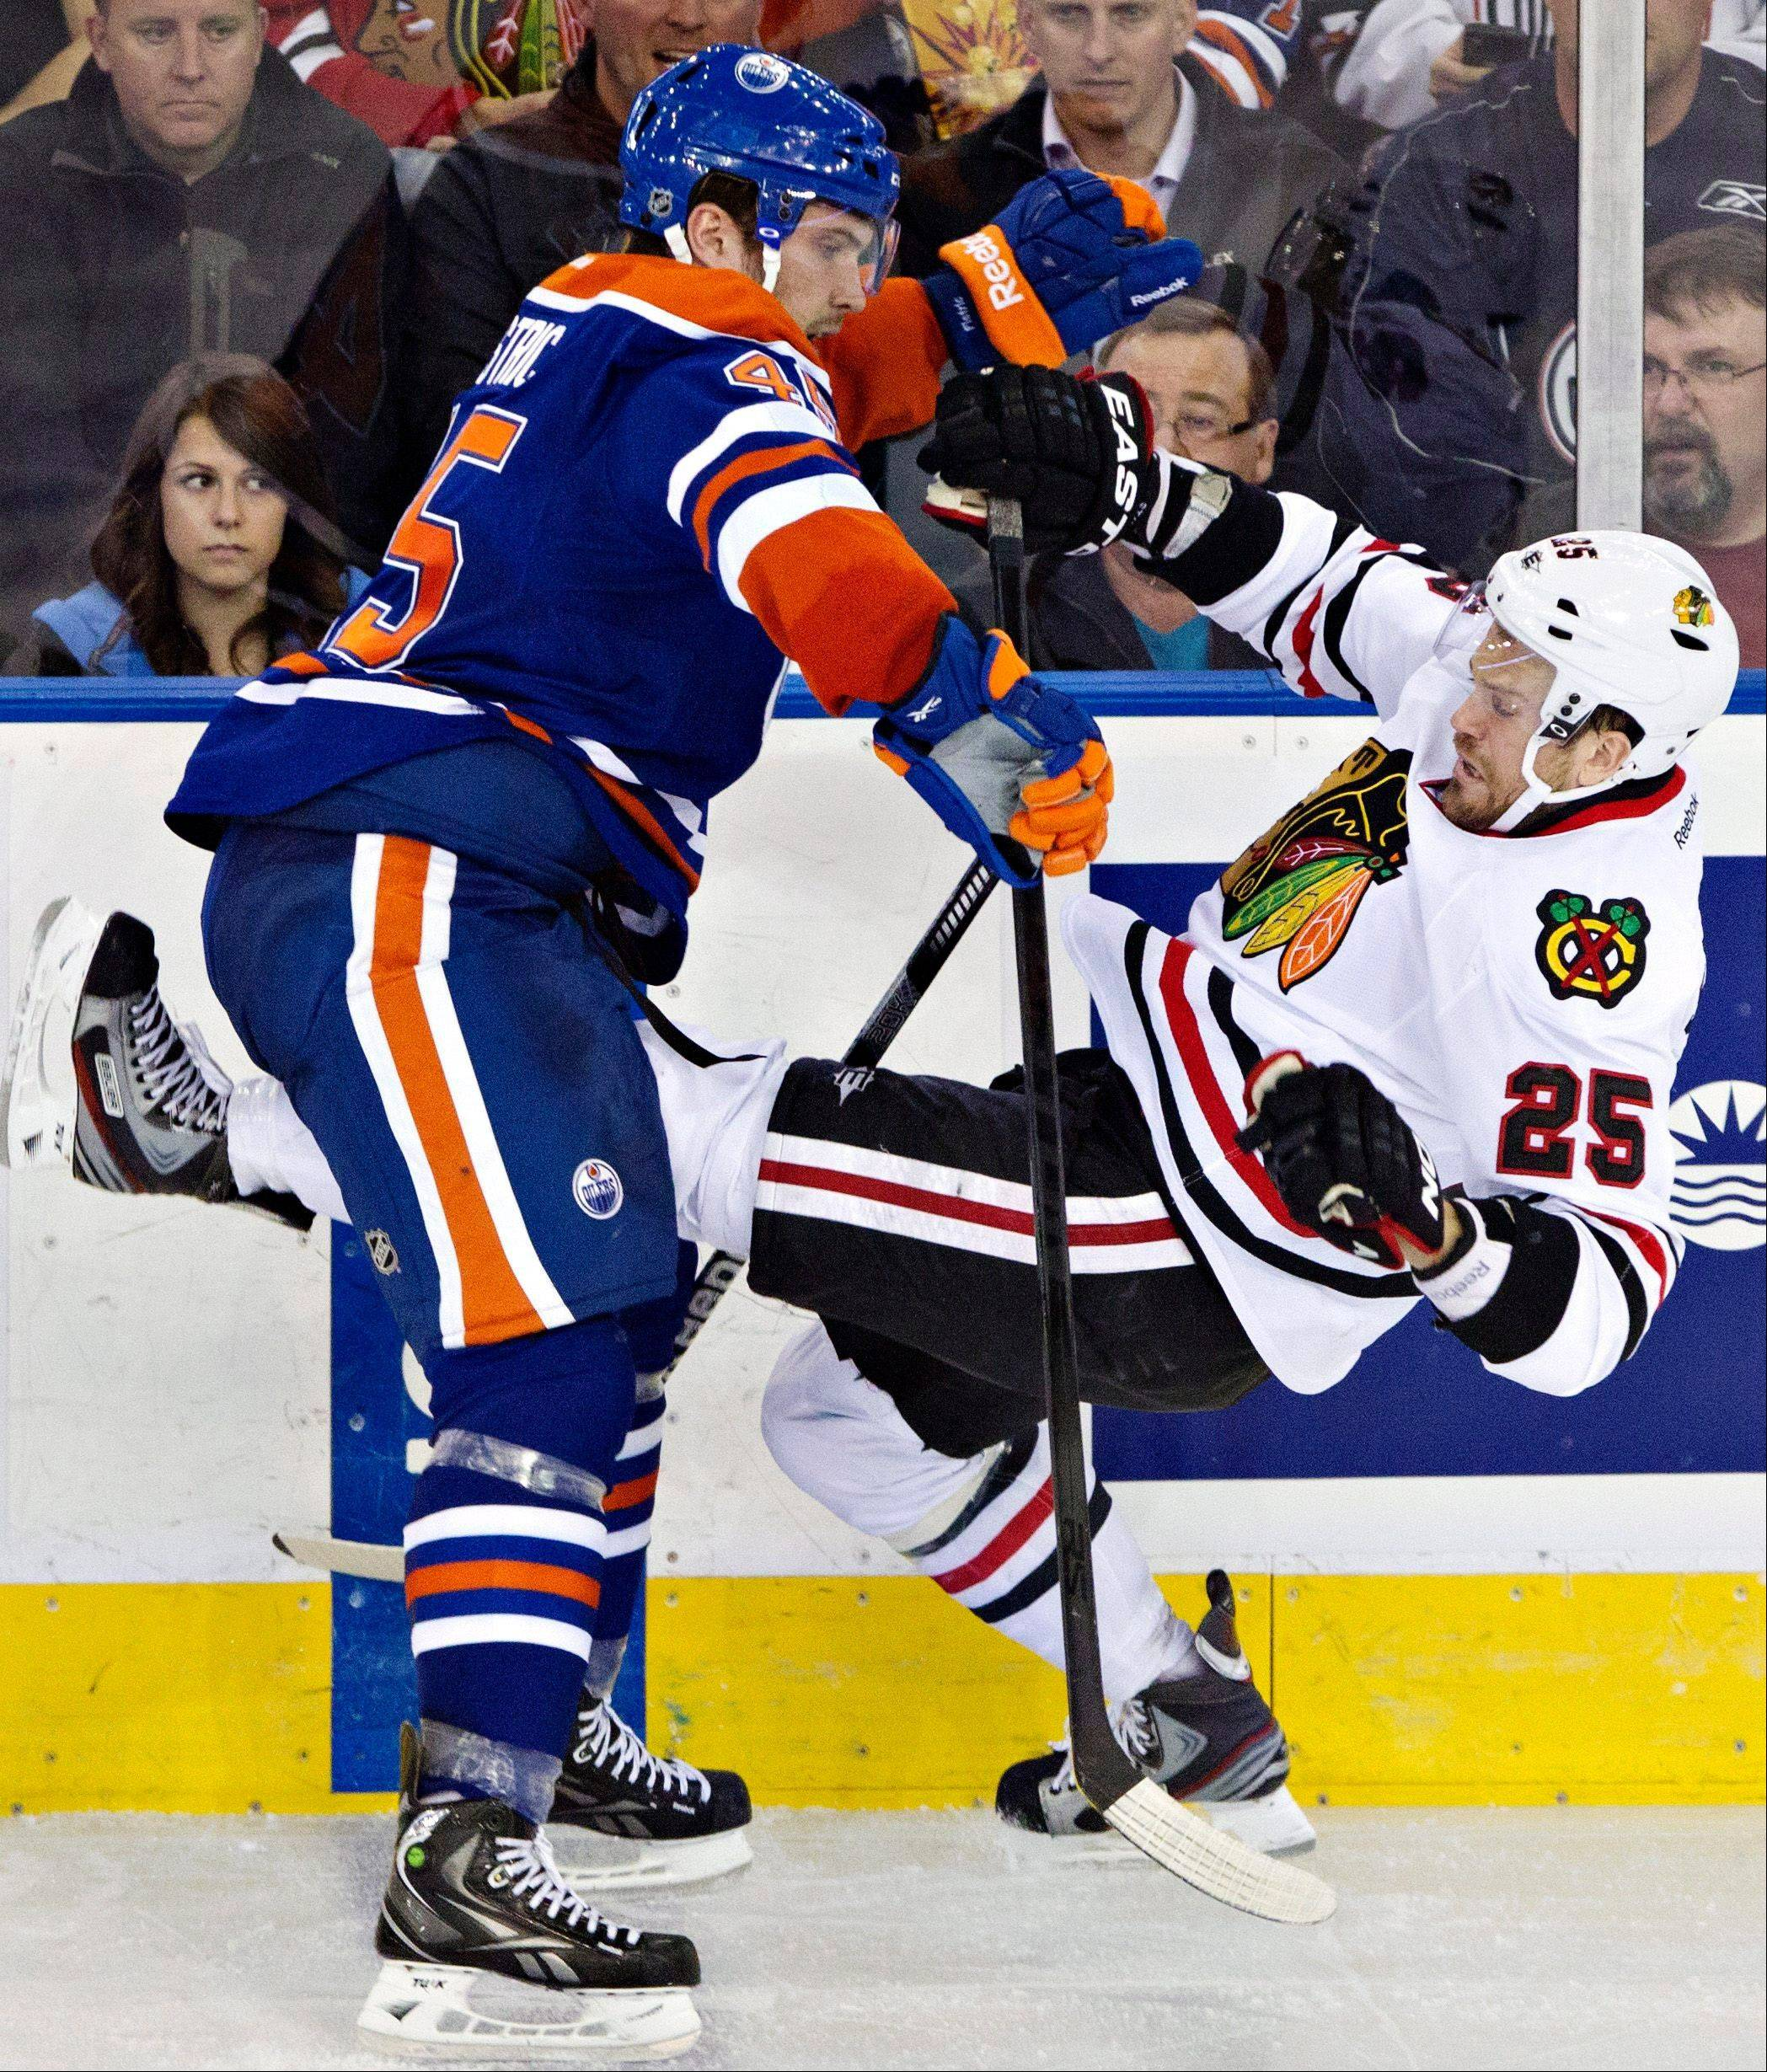 Chicago Blackhawks' Viktor Stalberg, right, is checked by Edmonton Oilers' Mark Fistric during the second period of their NHL hockey game in Edmonton, Alberta, Wednesday, April 24, 2013.